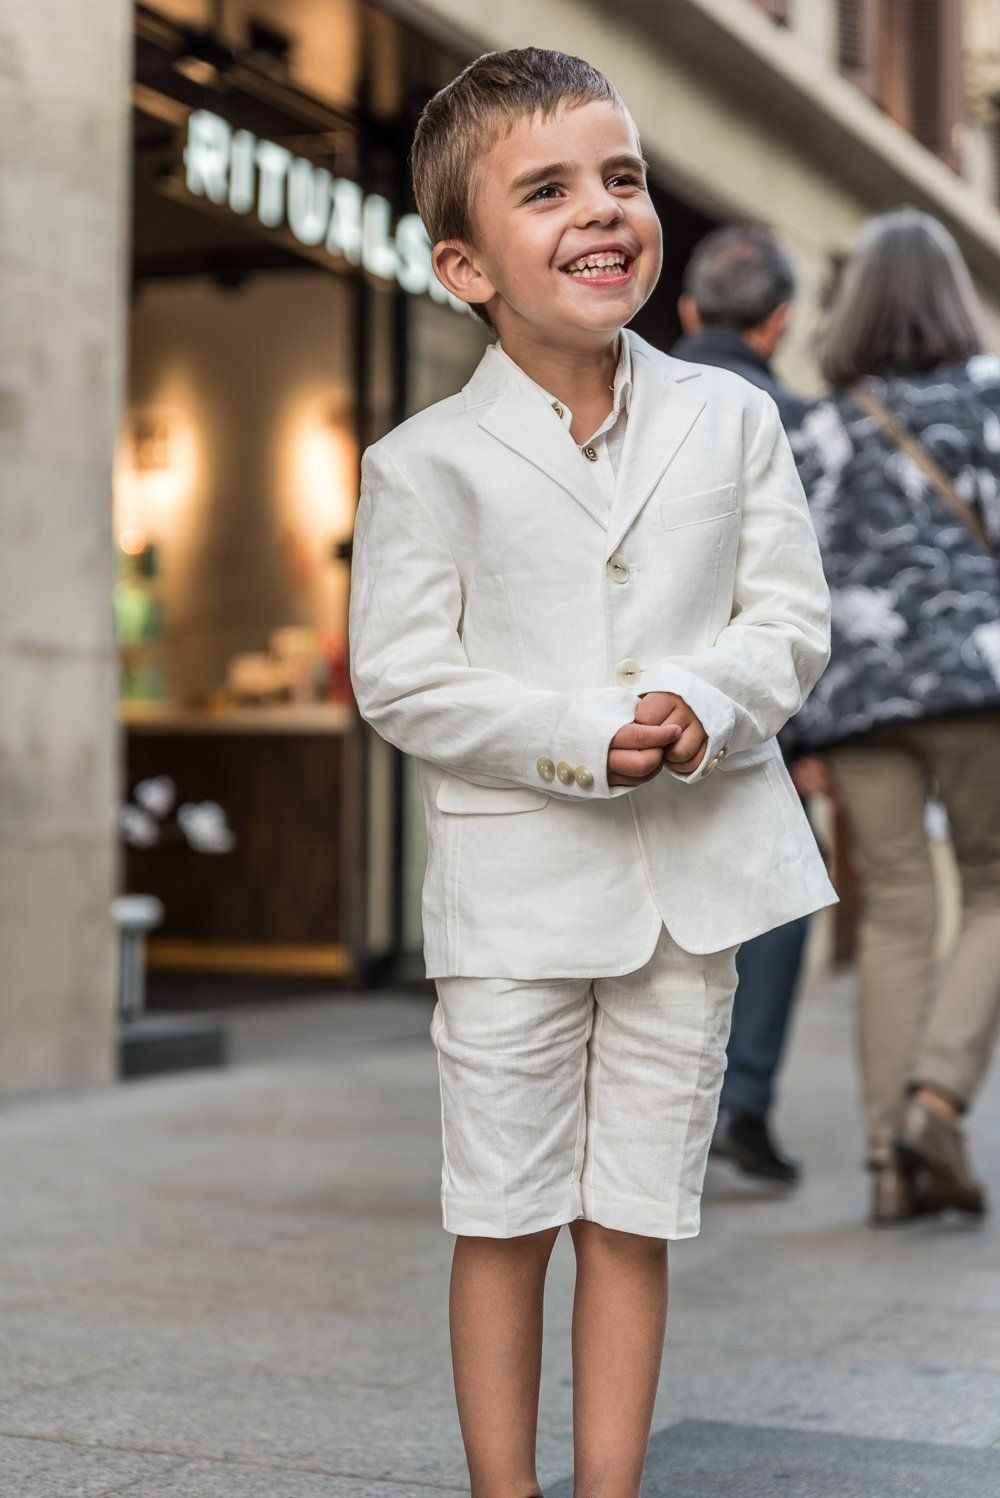 Boys Linen Suit Summer Formal Wear Kids Linen Outfit Communion